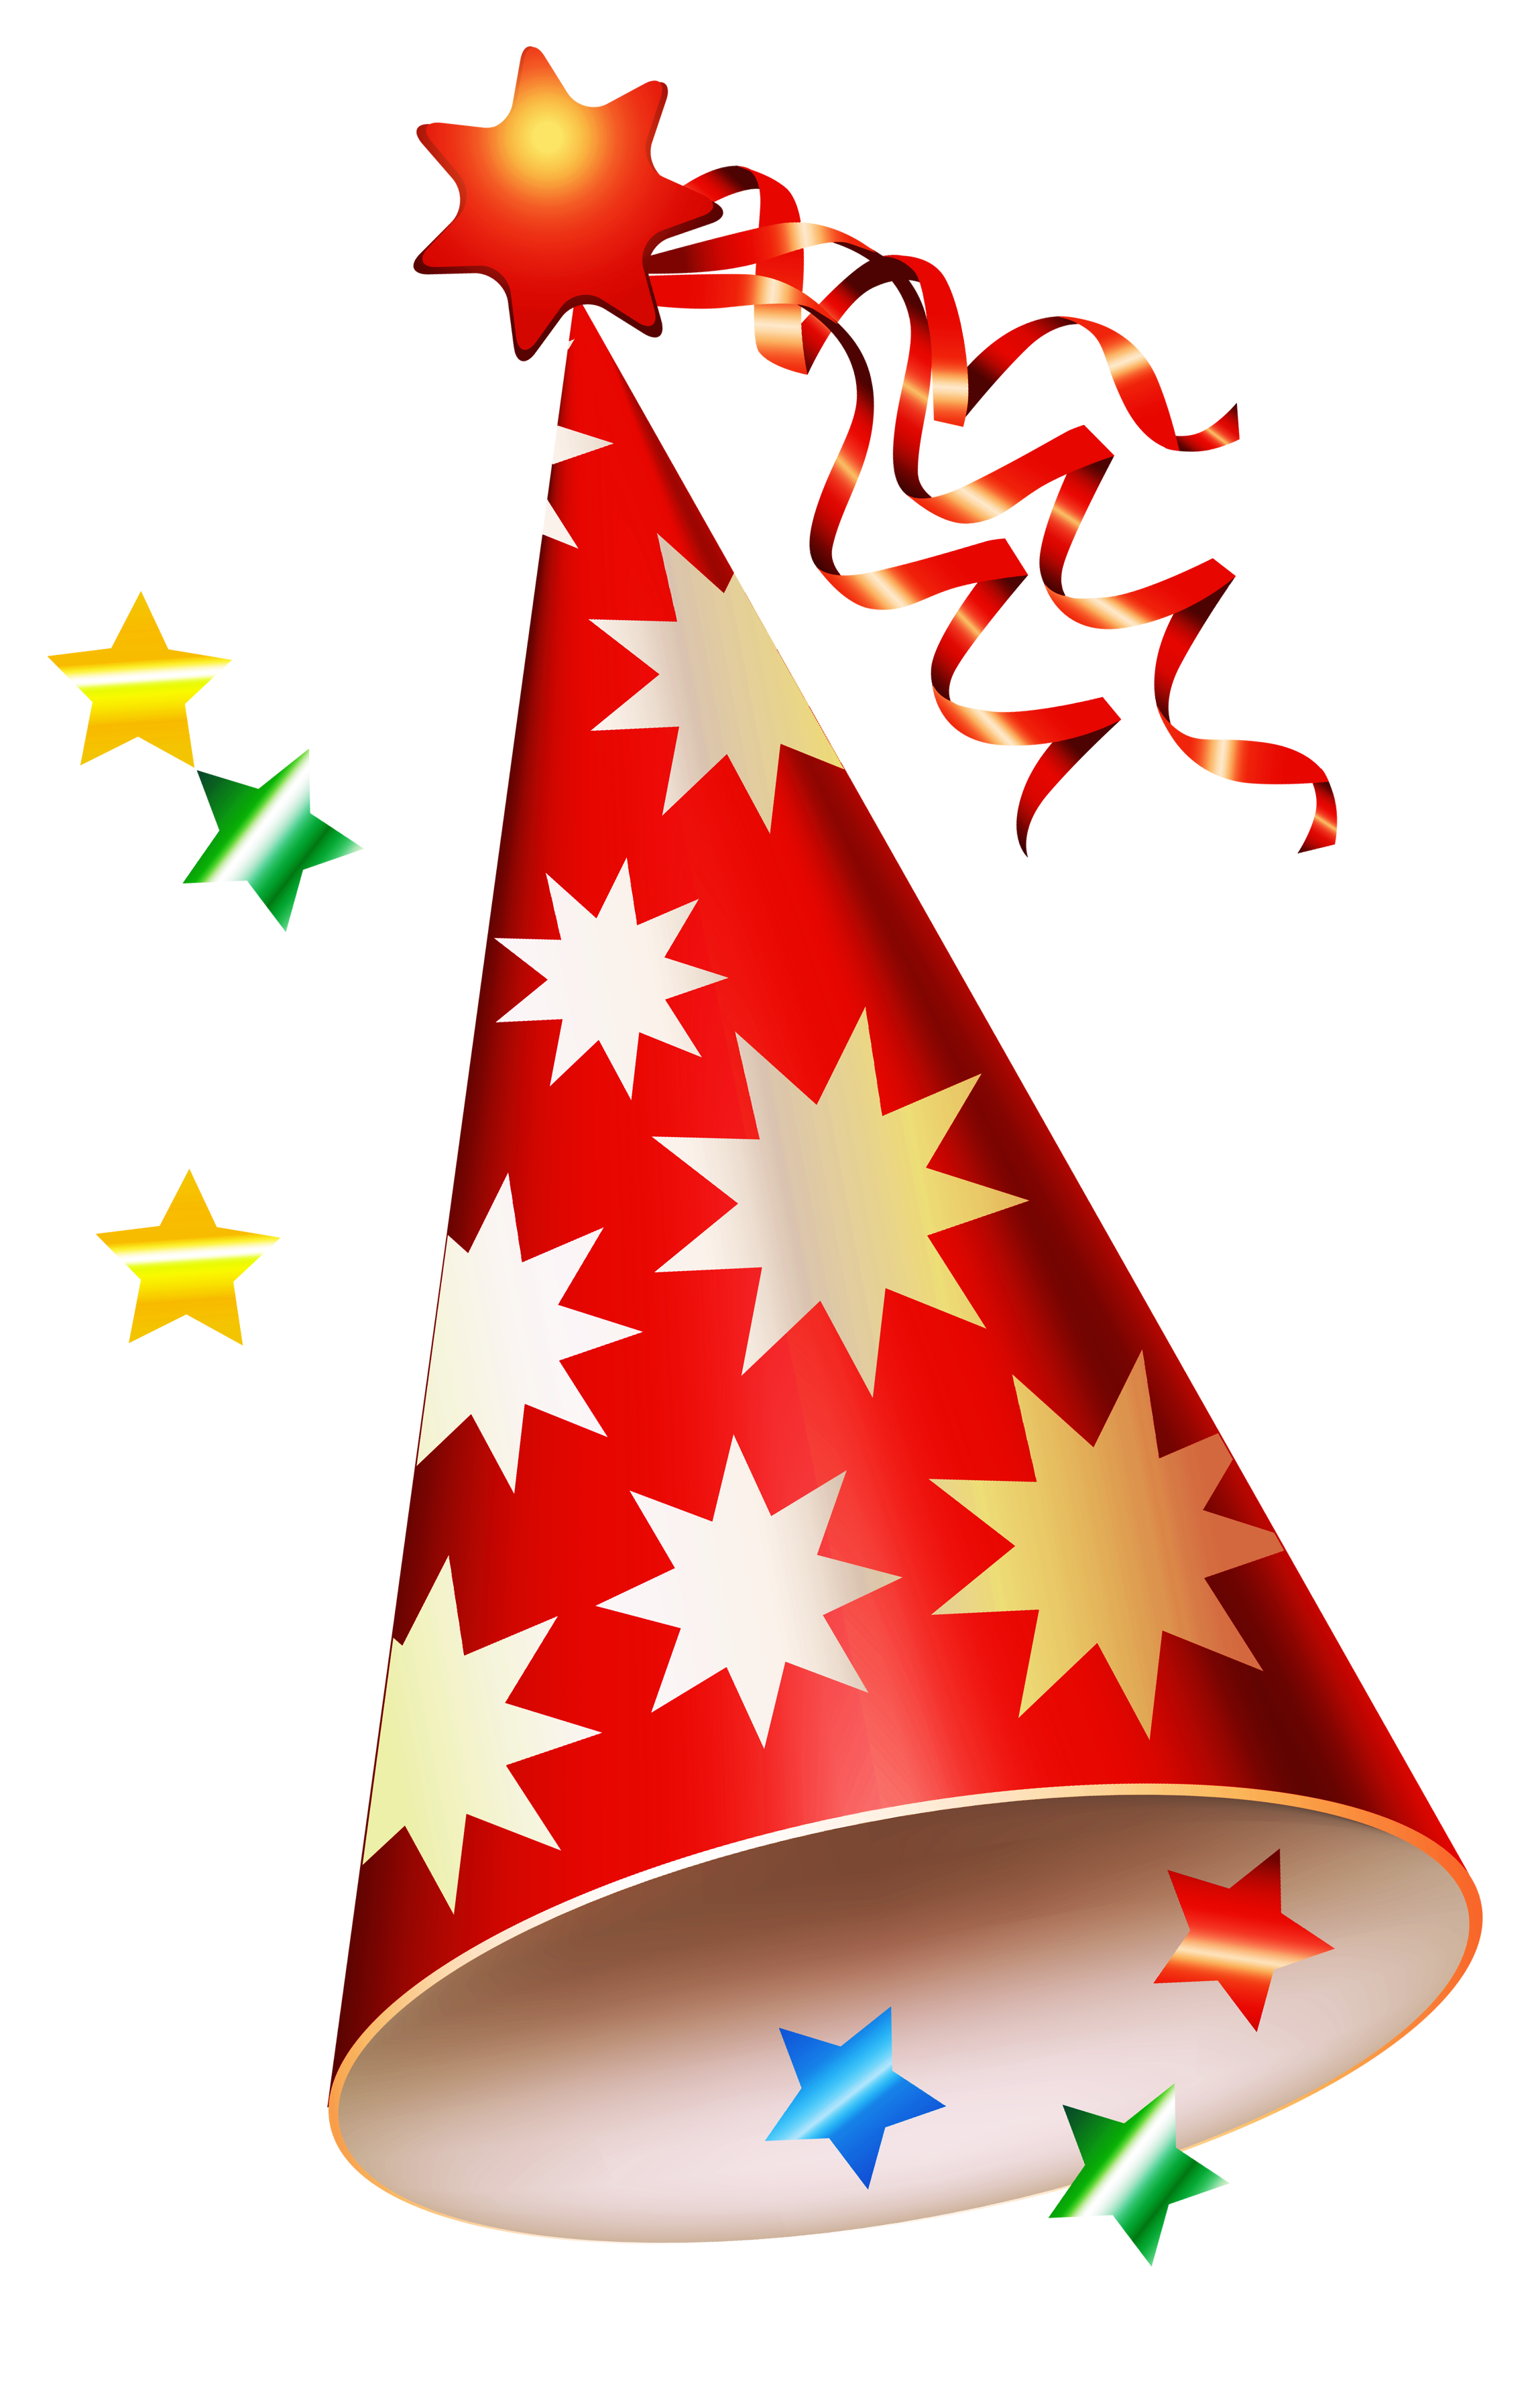 Birthday Cap Image Free Cliparts That You Can Download To You